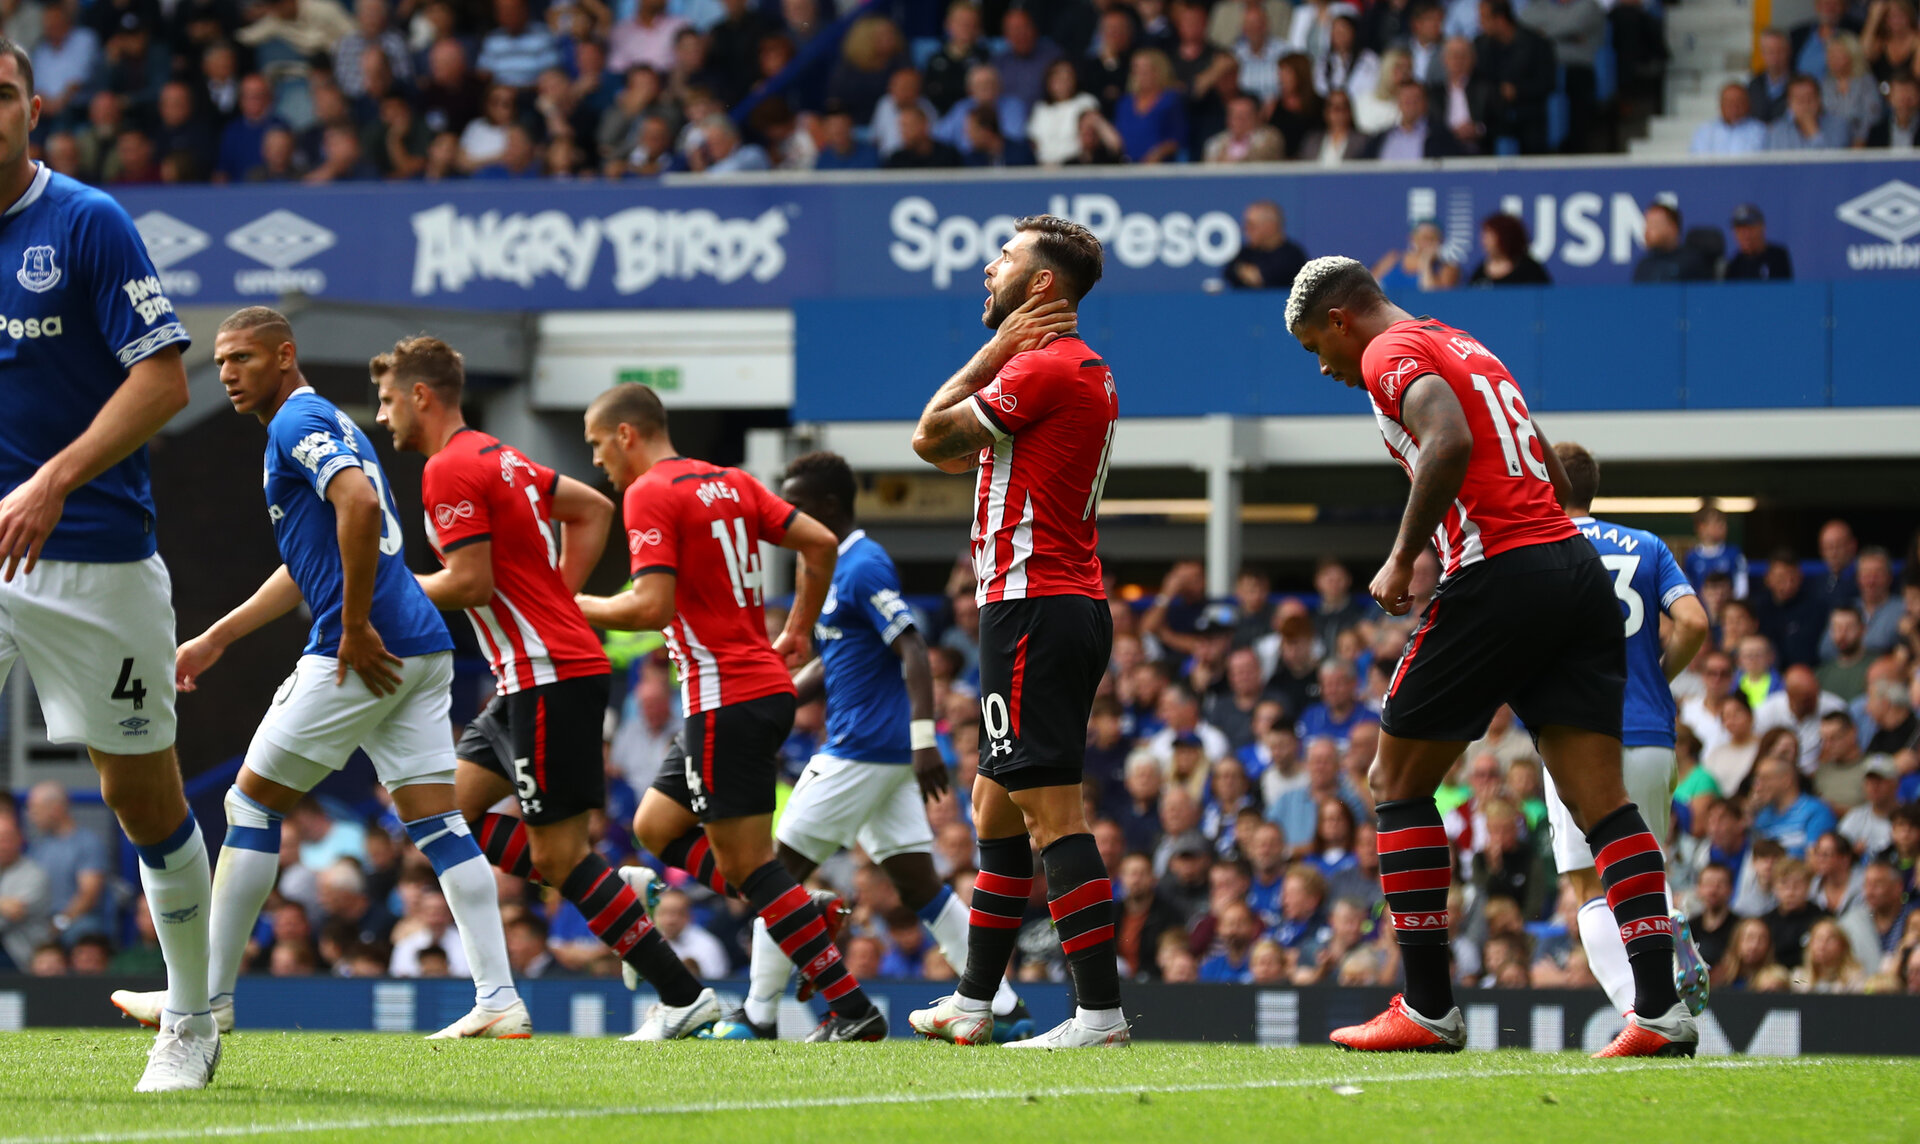 LIVERPOOL, ENGLAND - AUGUST 18: Charlie Austin of Southampton during the Premier League match between Everton FC and Southampton FC at Goodison Park on August 18, 2018 in Liverpool, United Kingdom. (Photo by Matt Watson/Southampton FC via Getty Images)